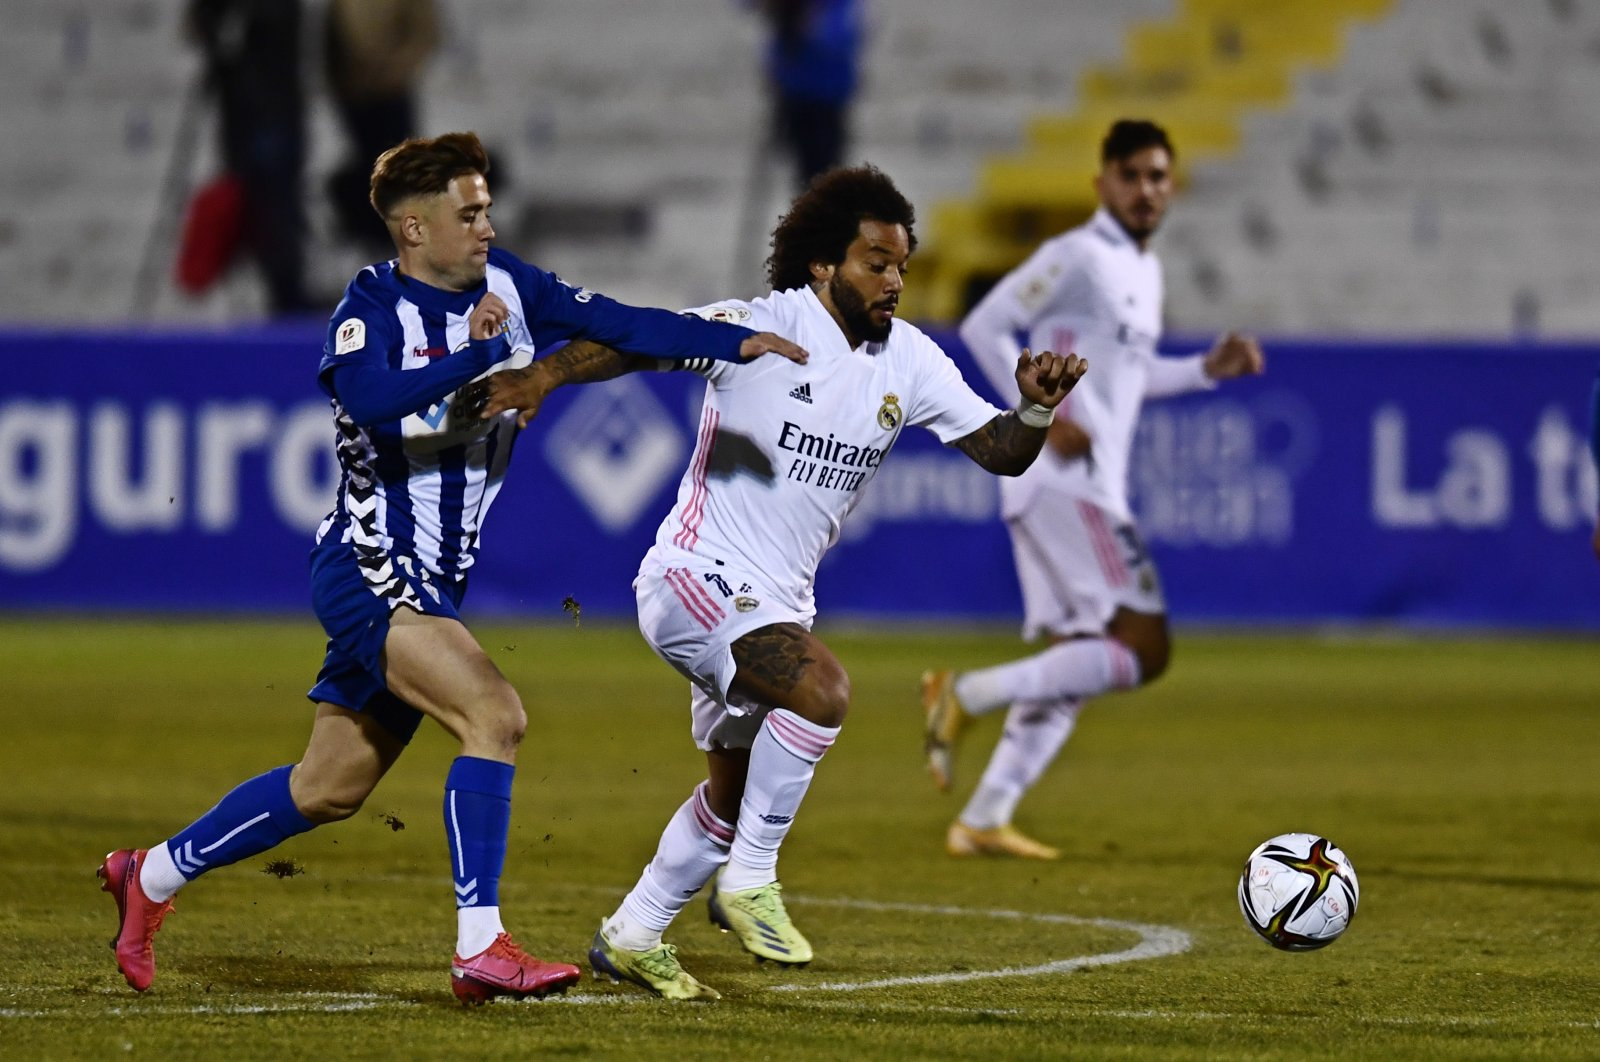 Real Madrid's Marcelo, center holds off Alcoyano's Alberto Rubio during a Spanish Copa del Rey round of 32 soccer match between Alcoyano and Real Madrid at the El Collao stadium in Alcoy, Spain, Jan. 20, 2021. (AP Photo)